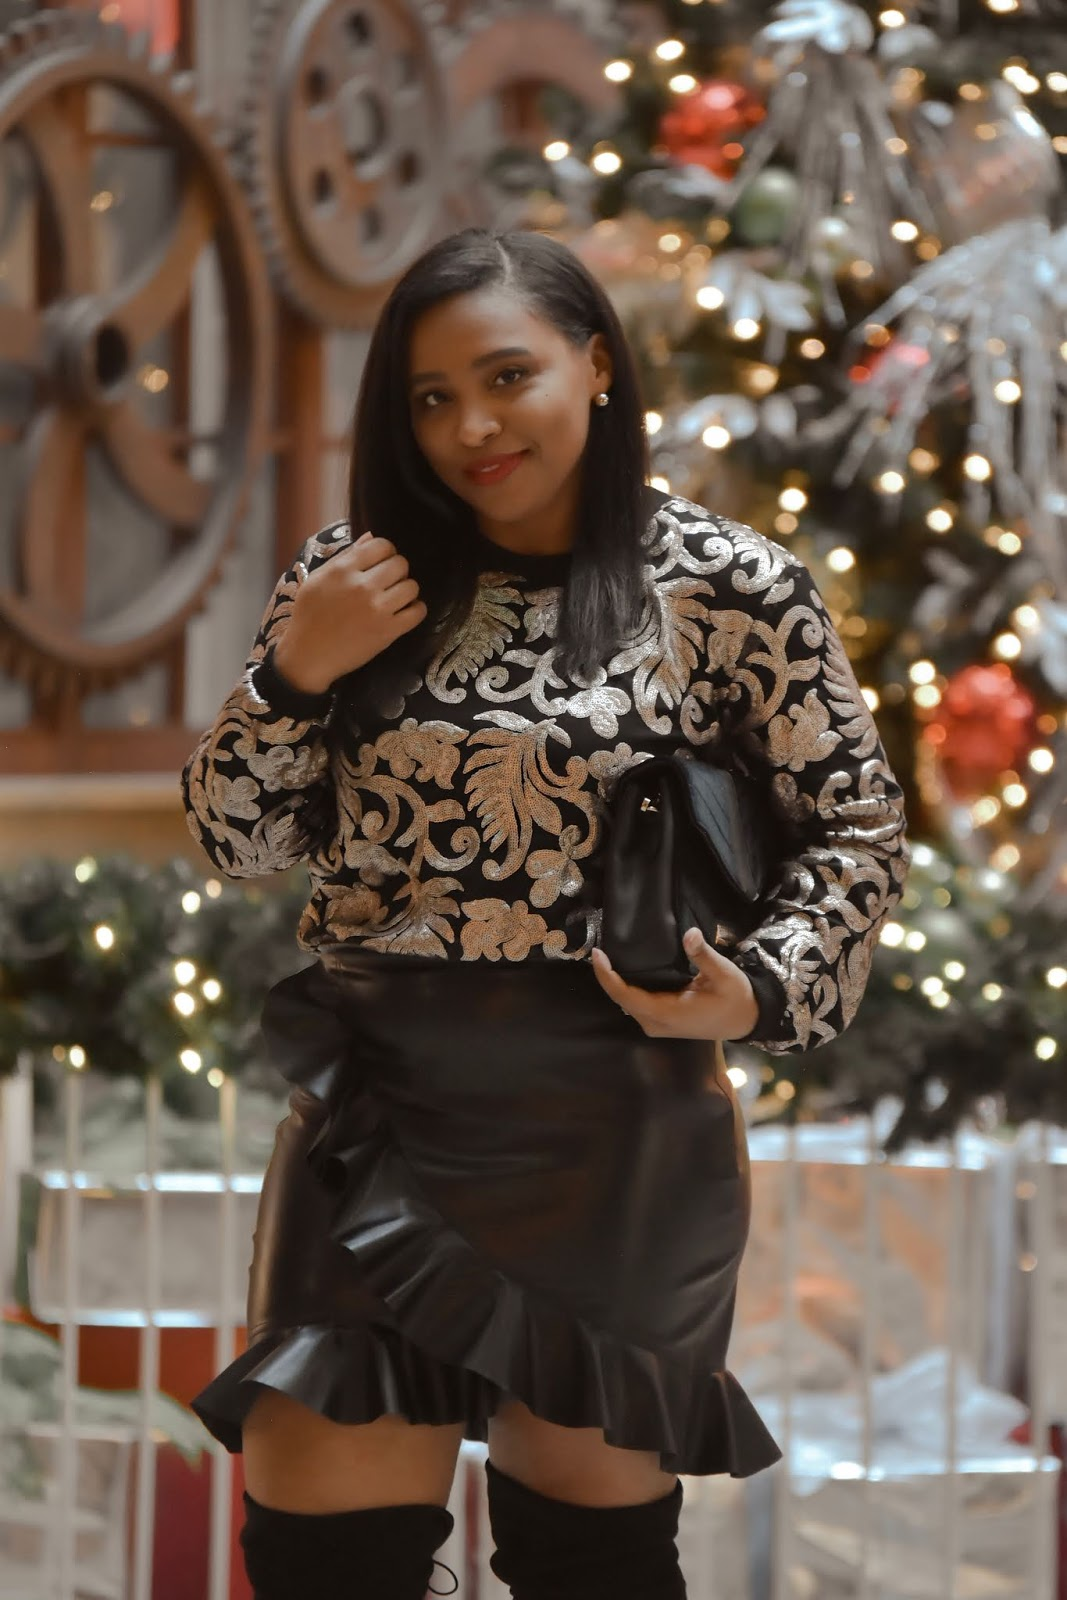 holiday outfit ideas, shein, shein clothing reviews, ruffle skirt, pattys kloset, over the knee boots